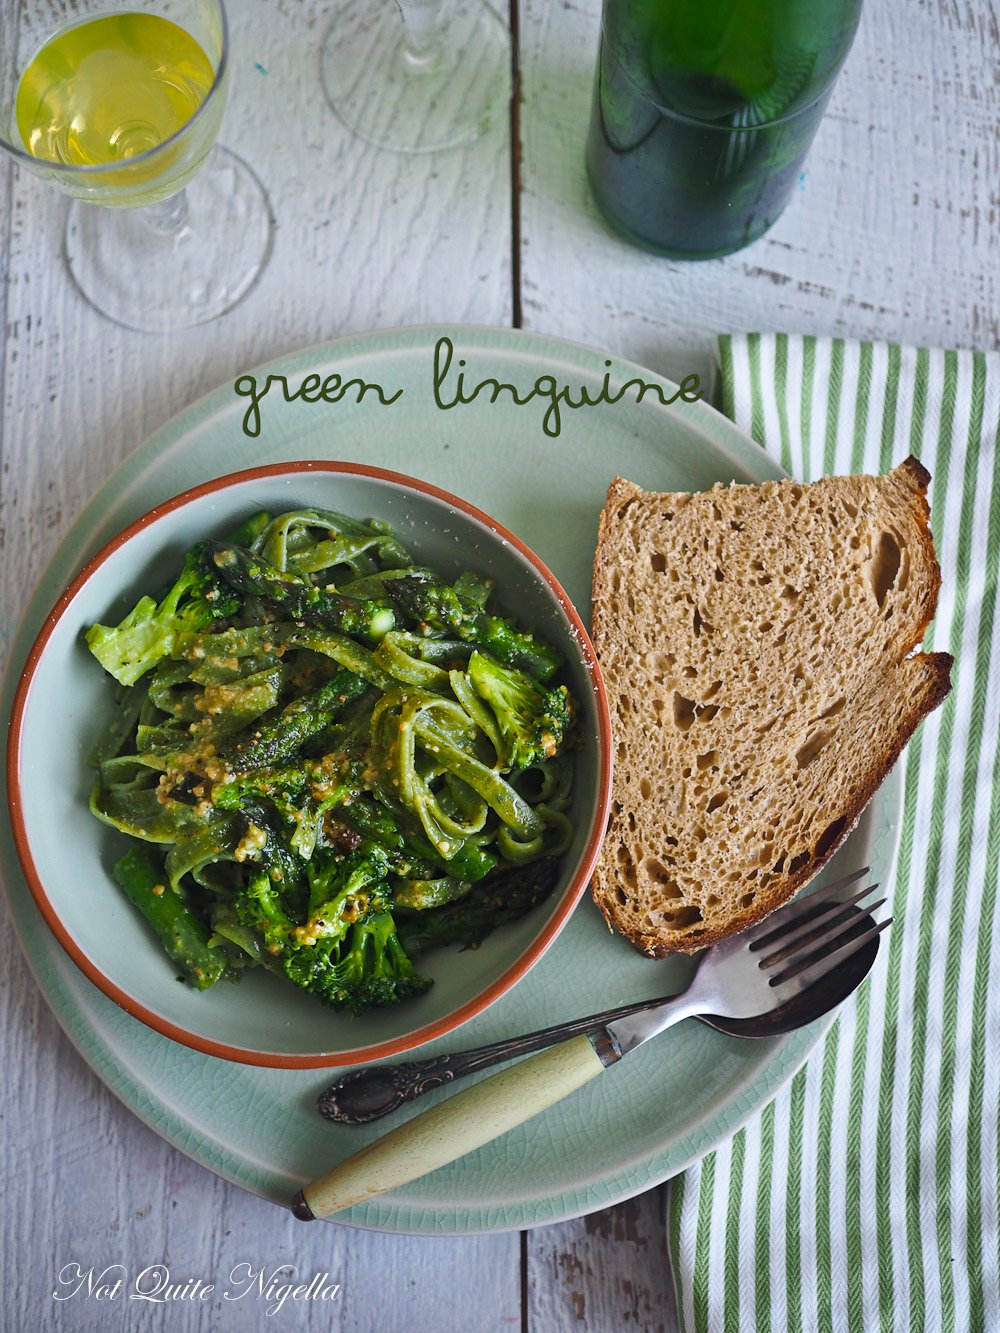 Vegetarian Linguine Asparagus Broccoli